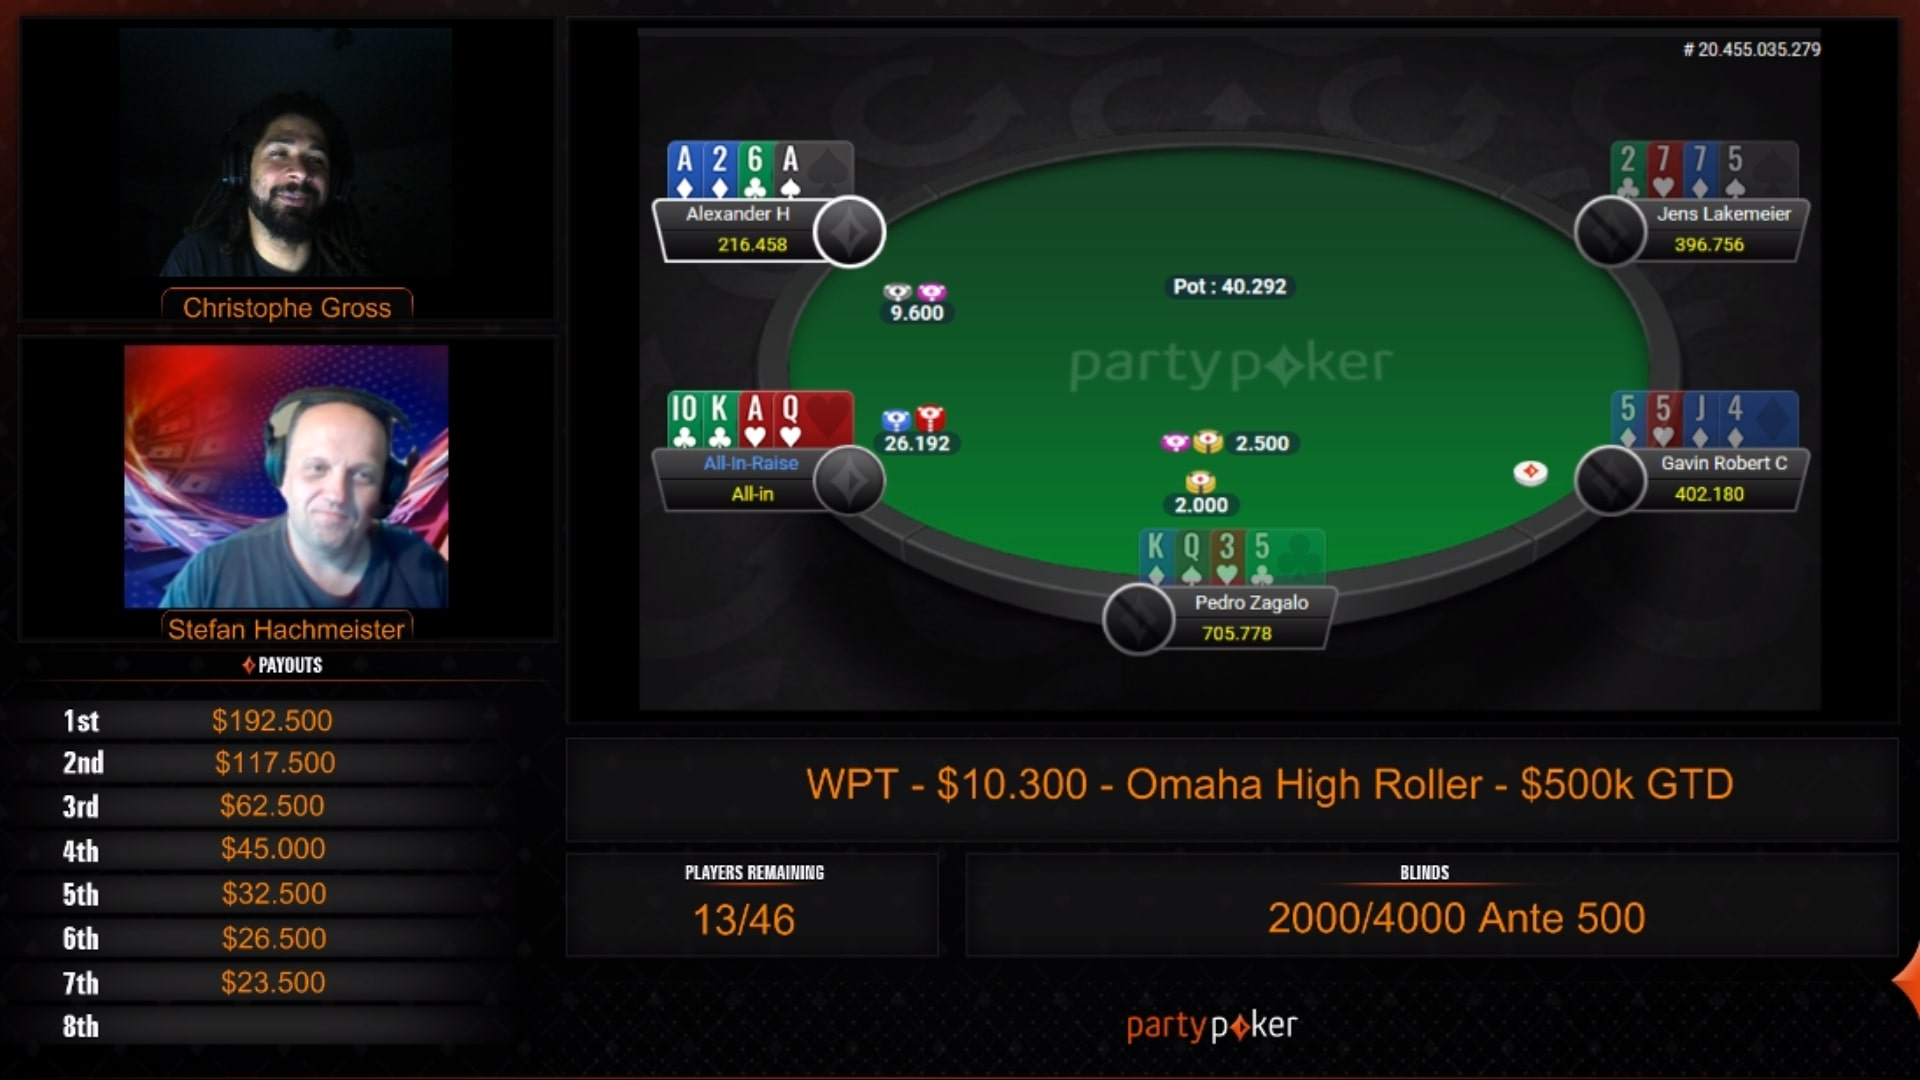 Partypoker live account PlayMillion Inkognito